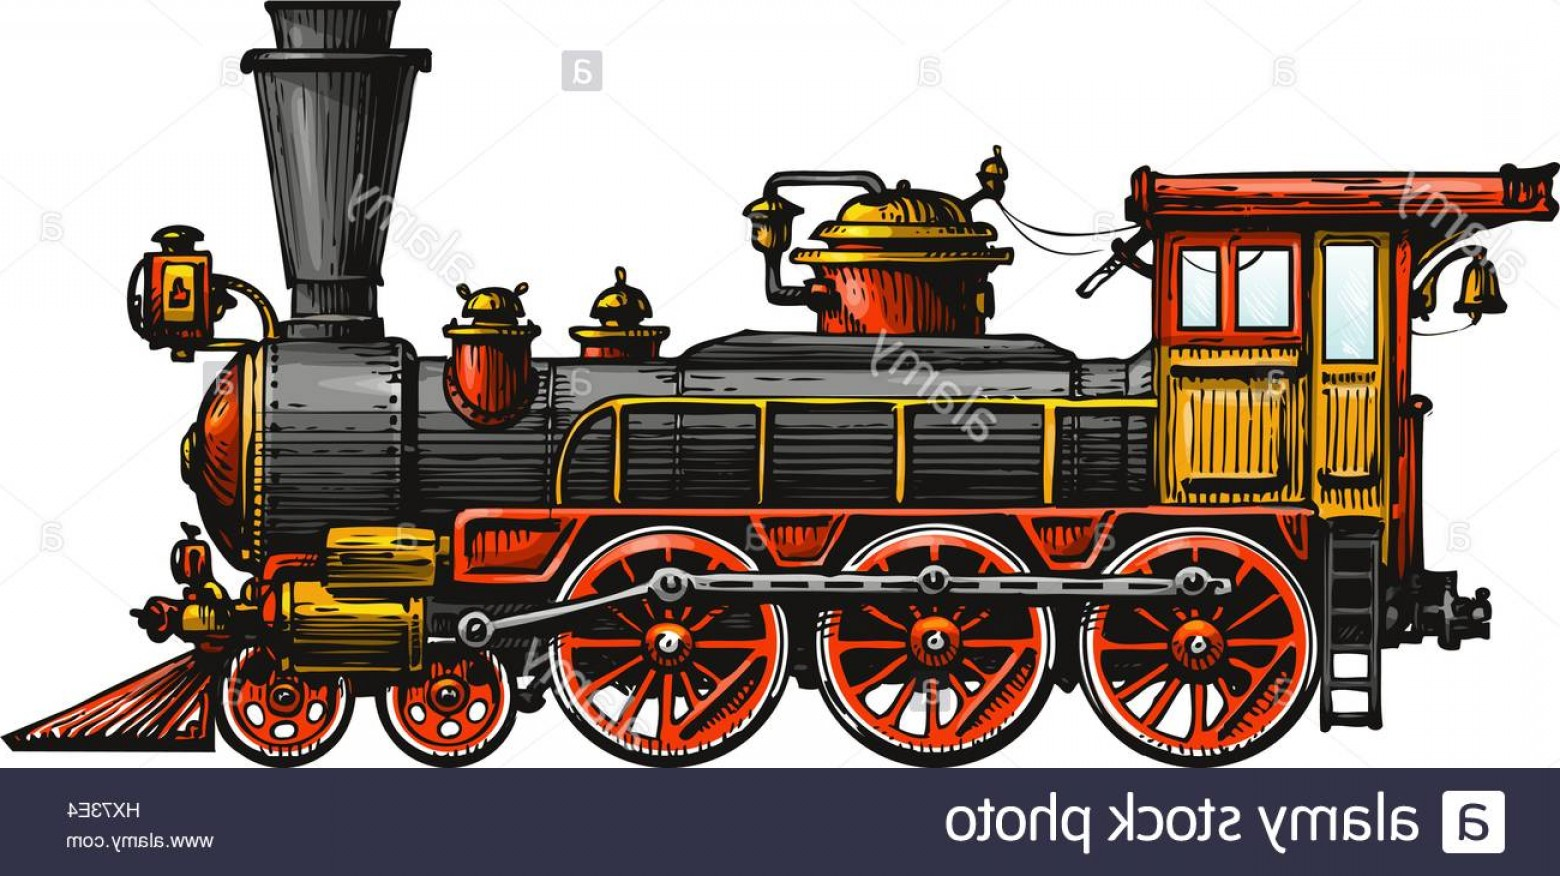 Vintage Steam Train Vector: Stock Photo Vintage Steam Locomotive Drawn Ancient Train Transport Vector Illustration